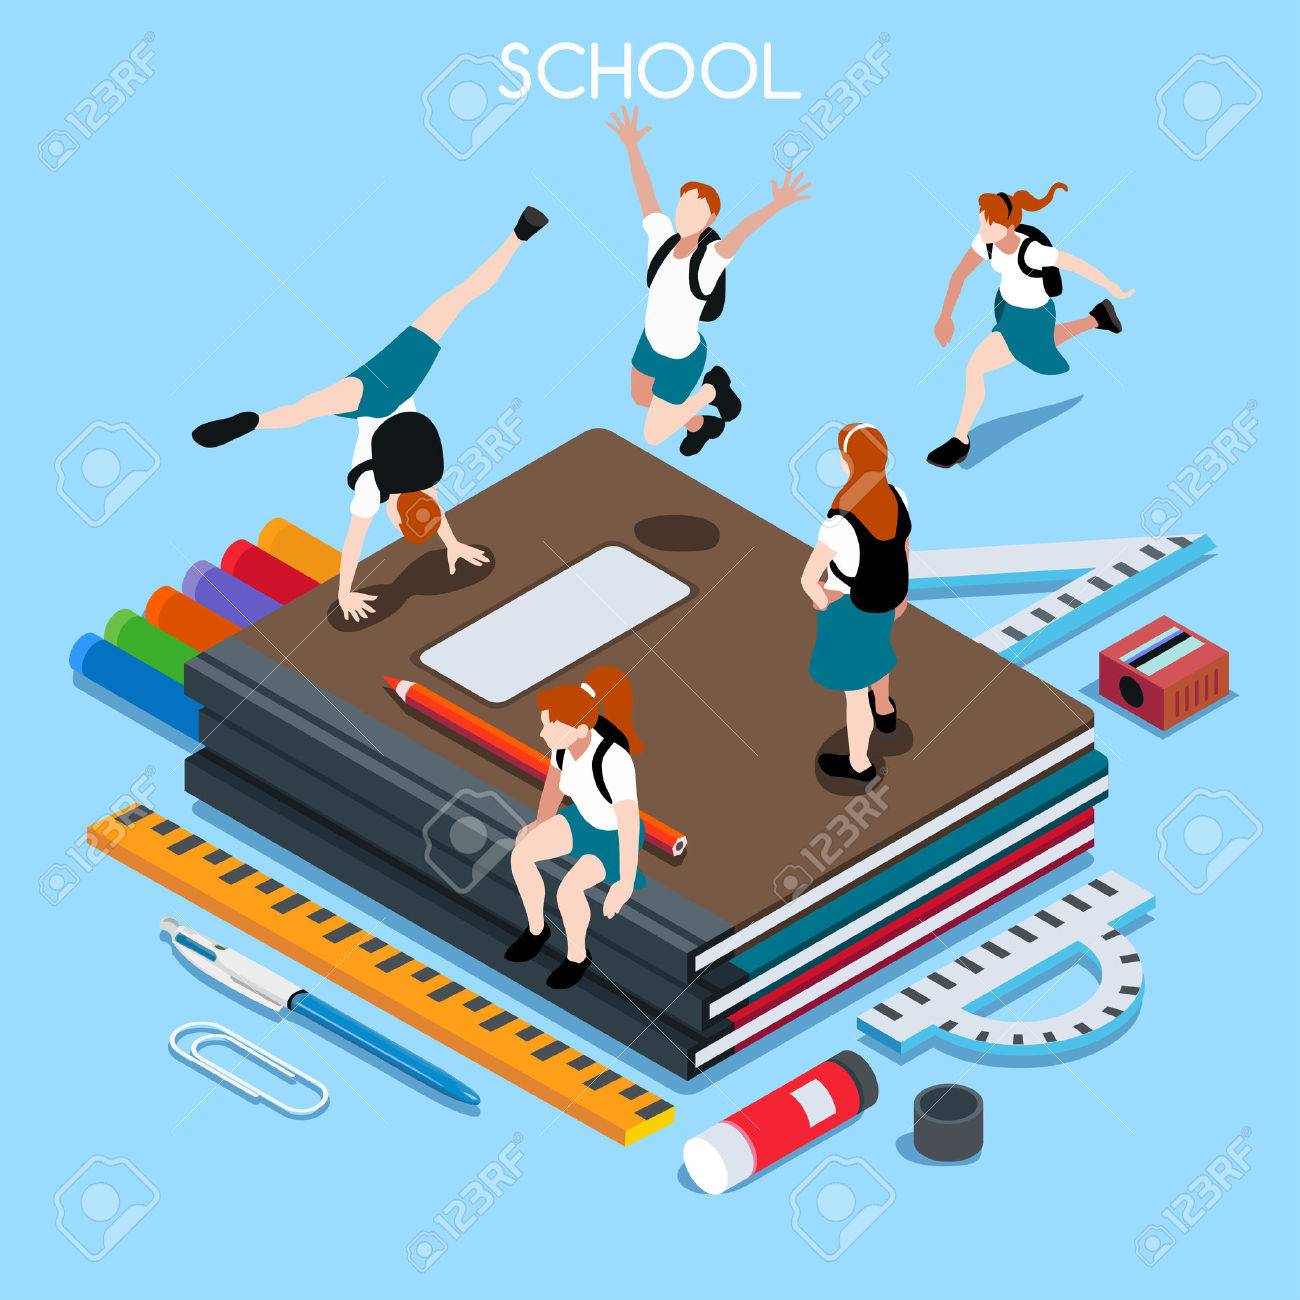 School Chancellery Set 04. Interacting People Unique IsometricRealistic Poses. NEW lively palette 3D Flat Vector Illustration. Happy Back to School - 44080018